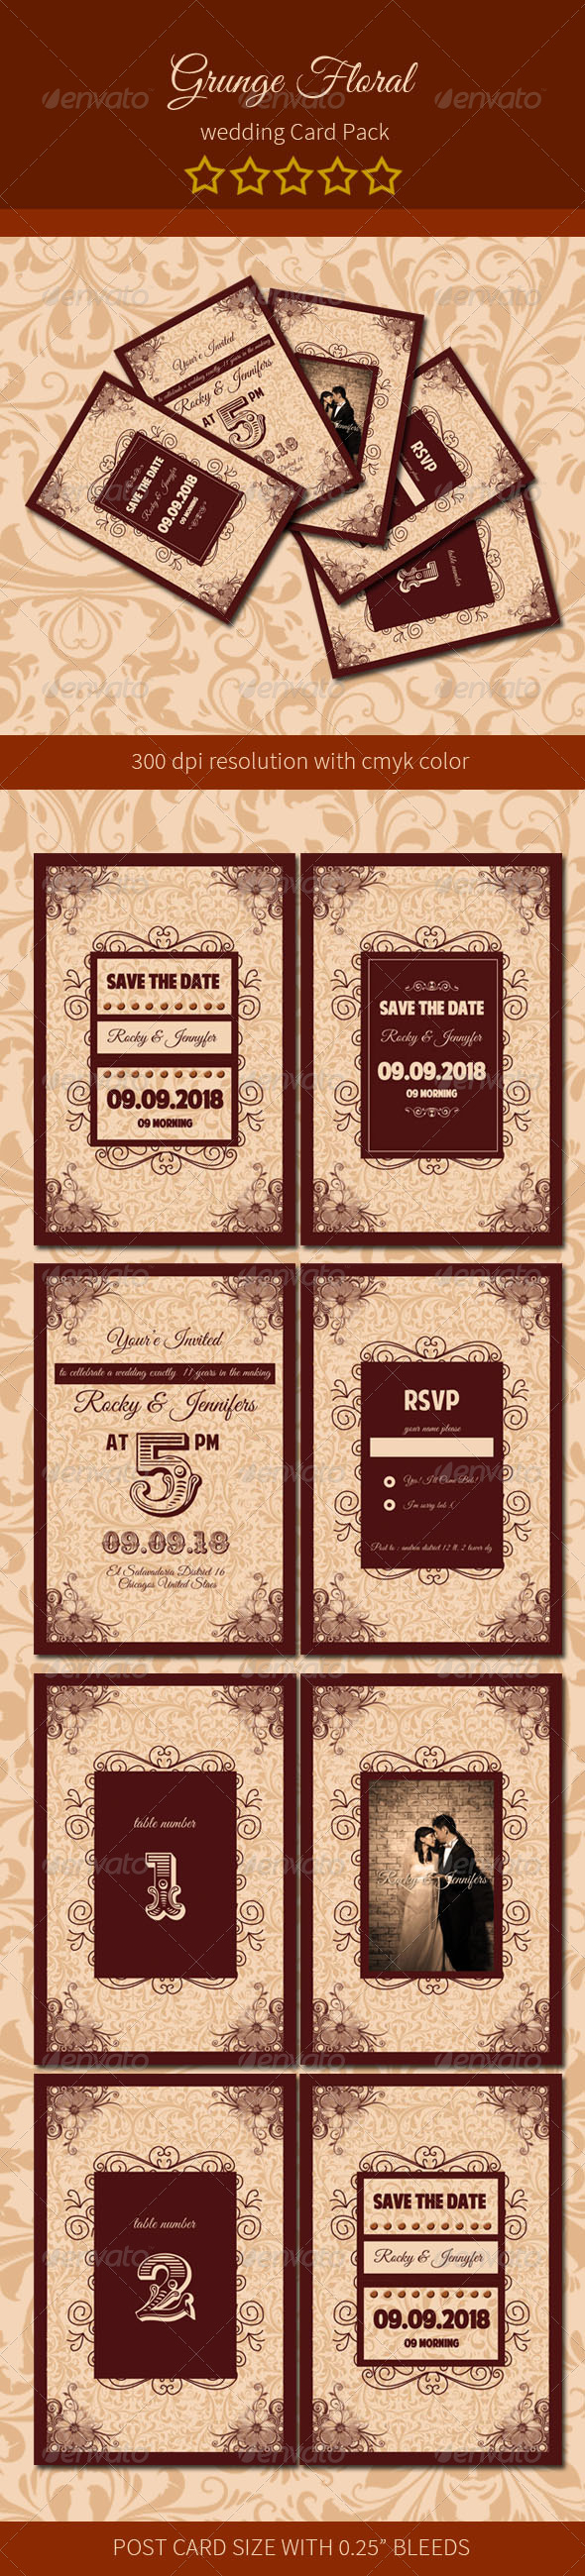 GraphicRiver Grunge Floral Wedding Card Pack 6748022